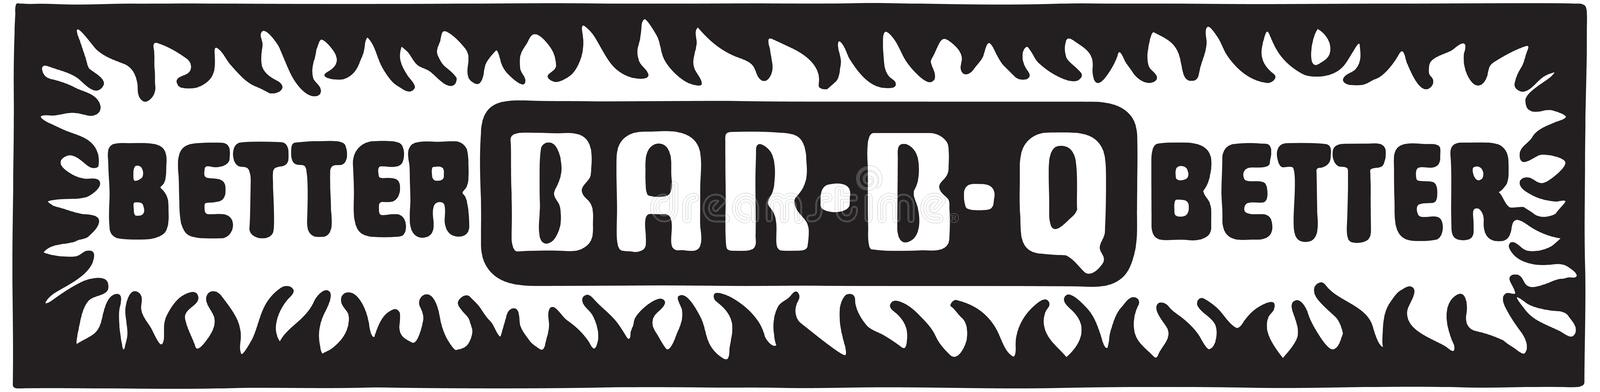 Better BarbBQ. Who Knew There Could Be A Better BarbBQ - Retro Ad Art Banner vector illustration